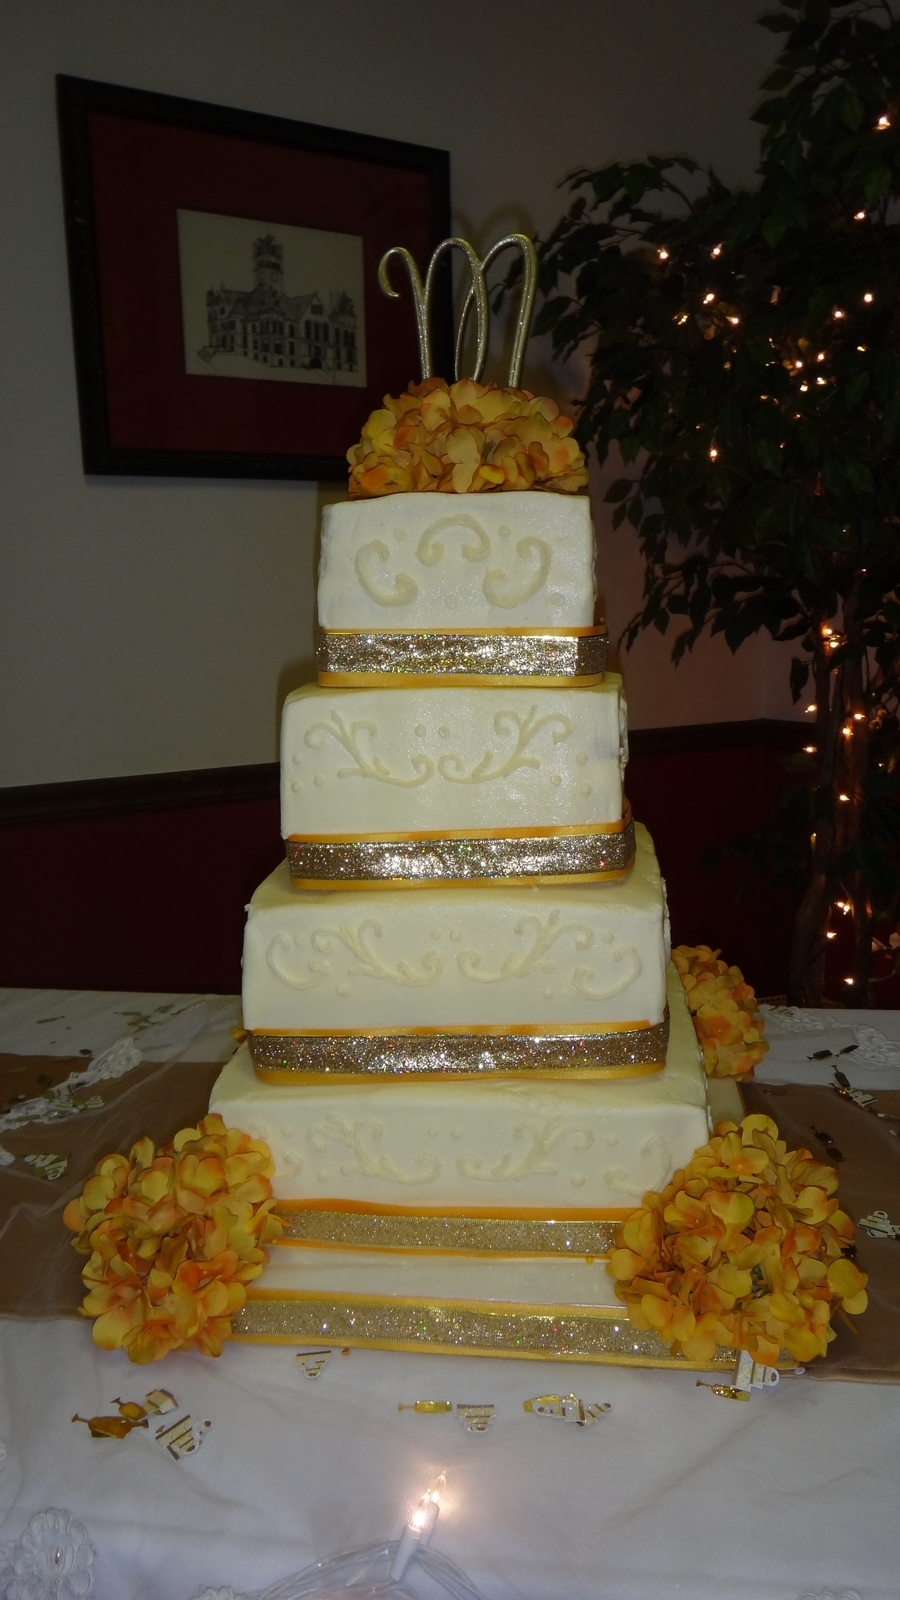 6 8 10 12 inch wedding cake 6 8 10 12 square wedding cake cakecentral 10483